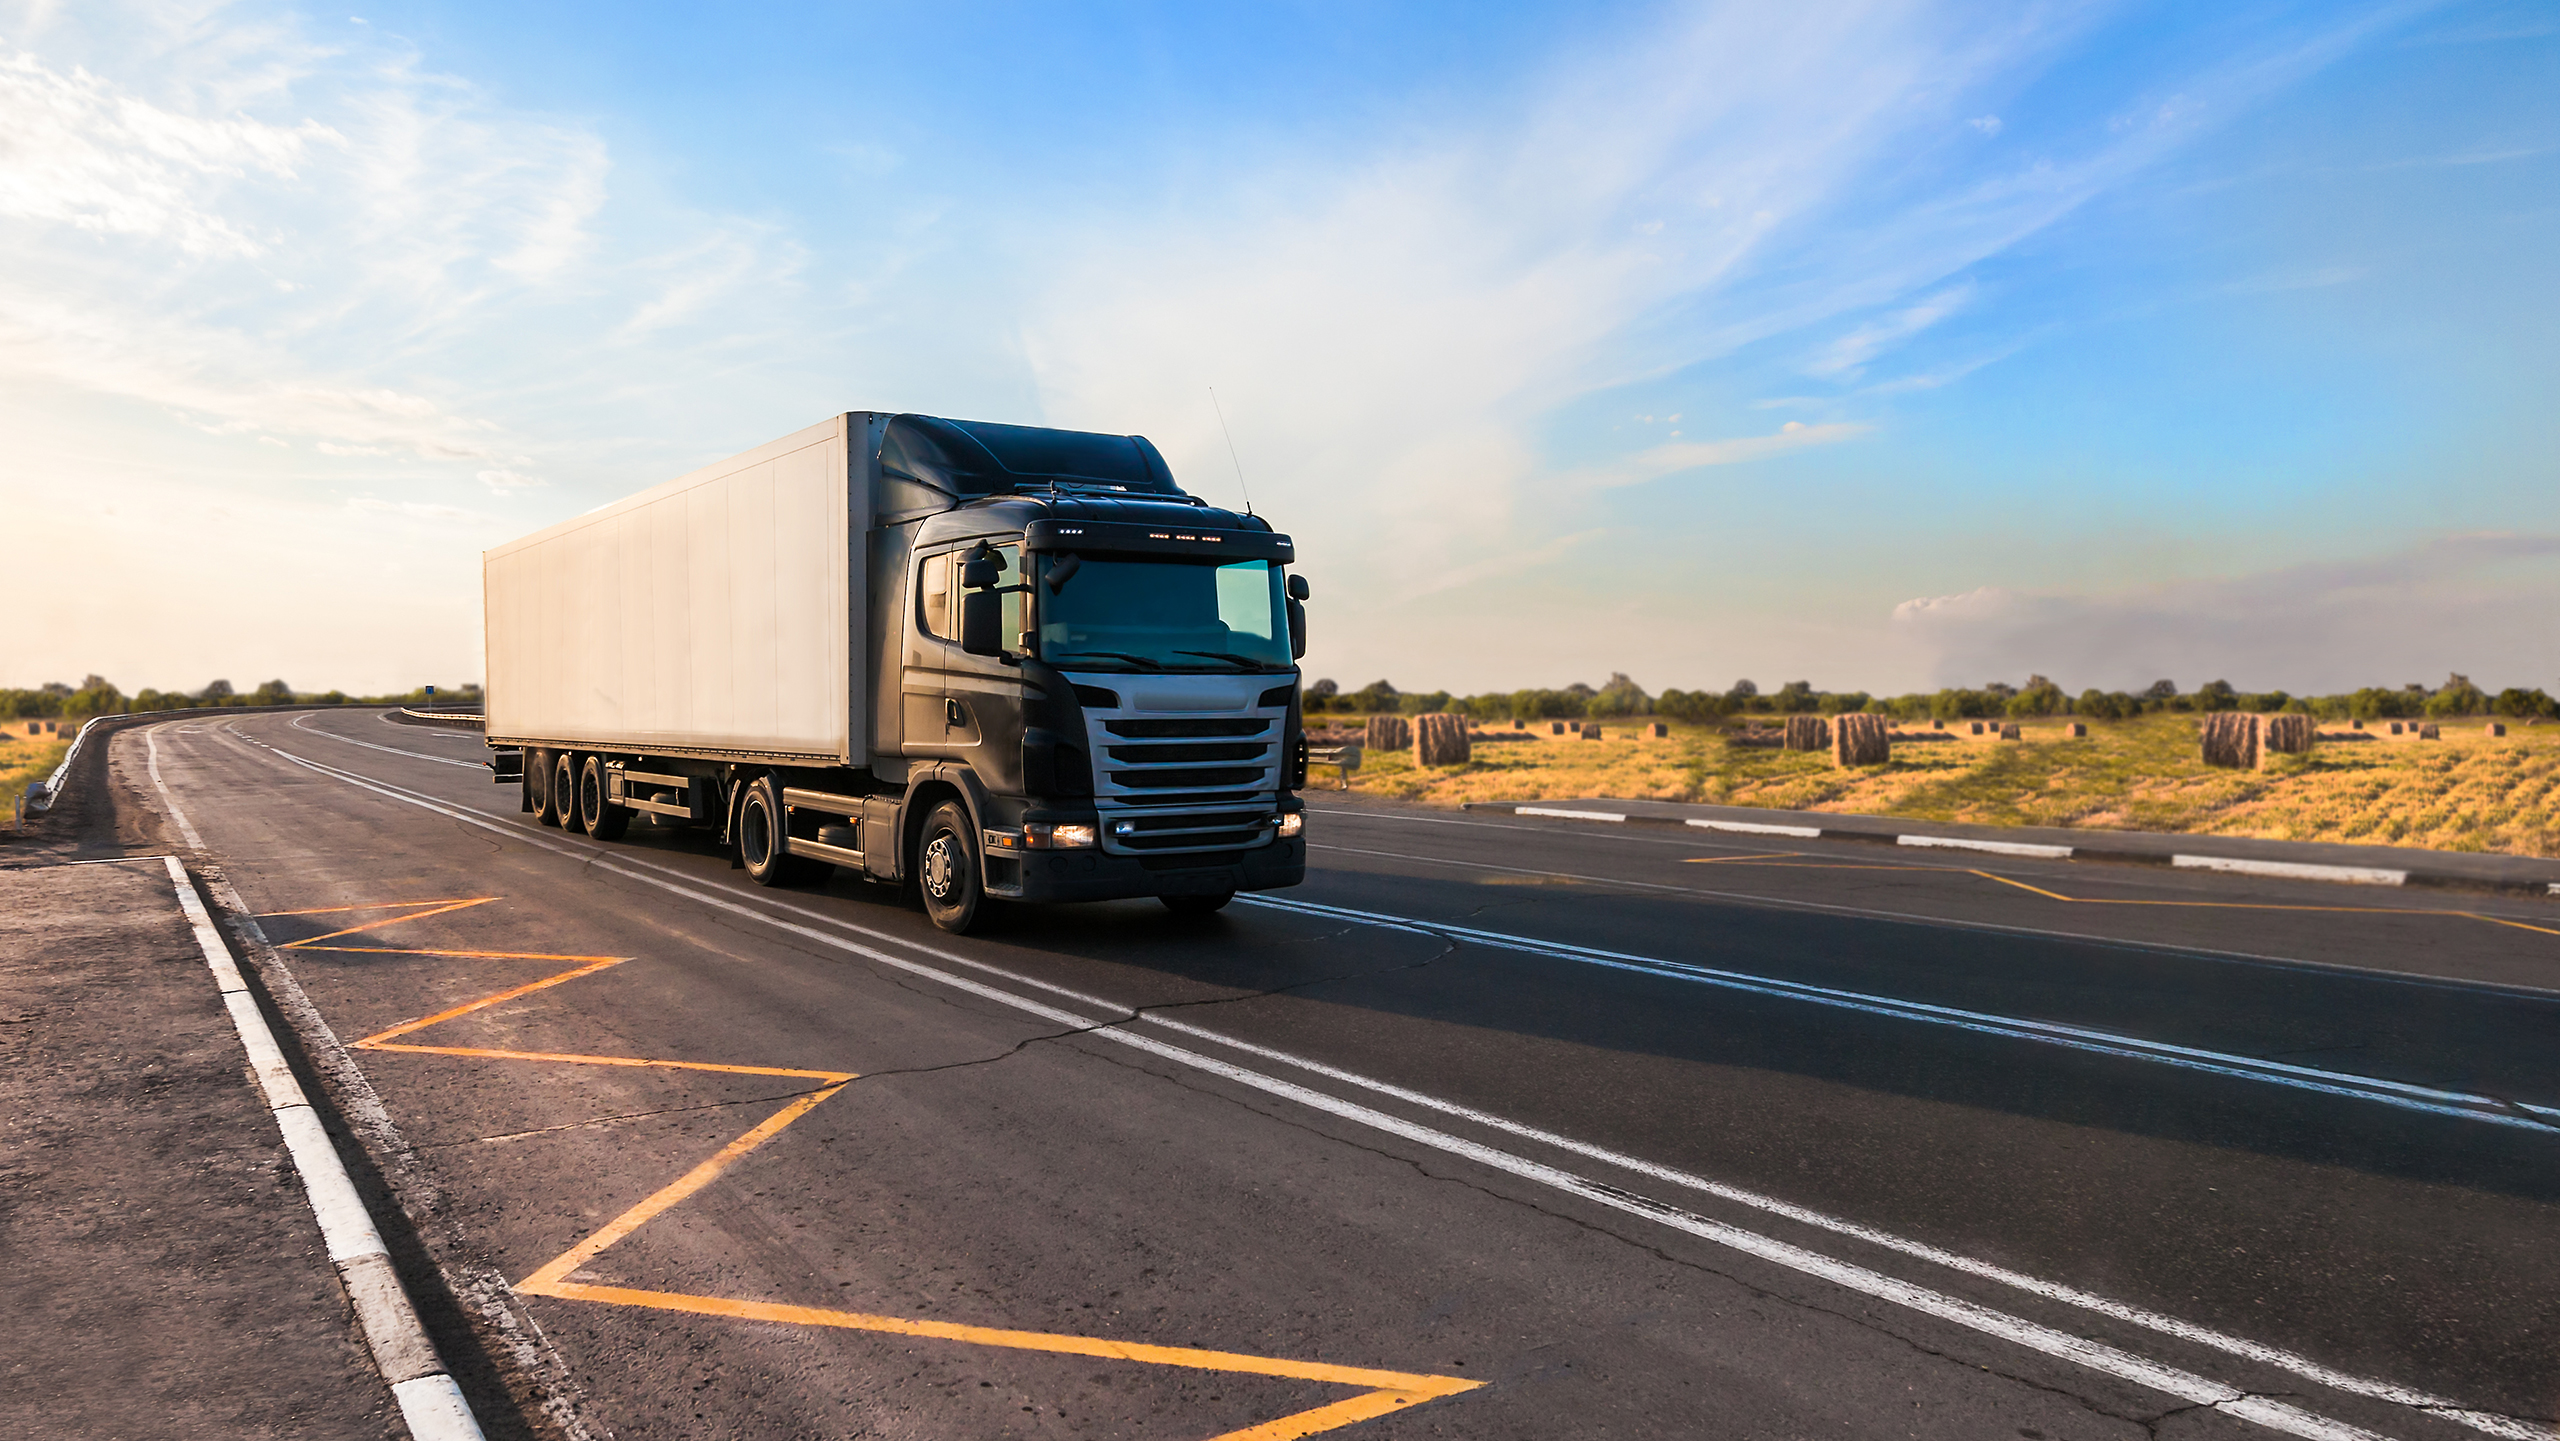 The long distances in the world's largest territorial state place high demands on the quality of trucks (Photo: Shutterstock)